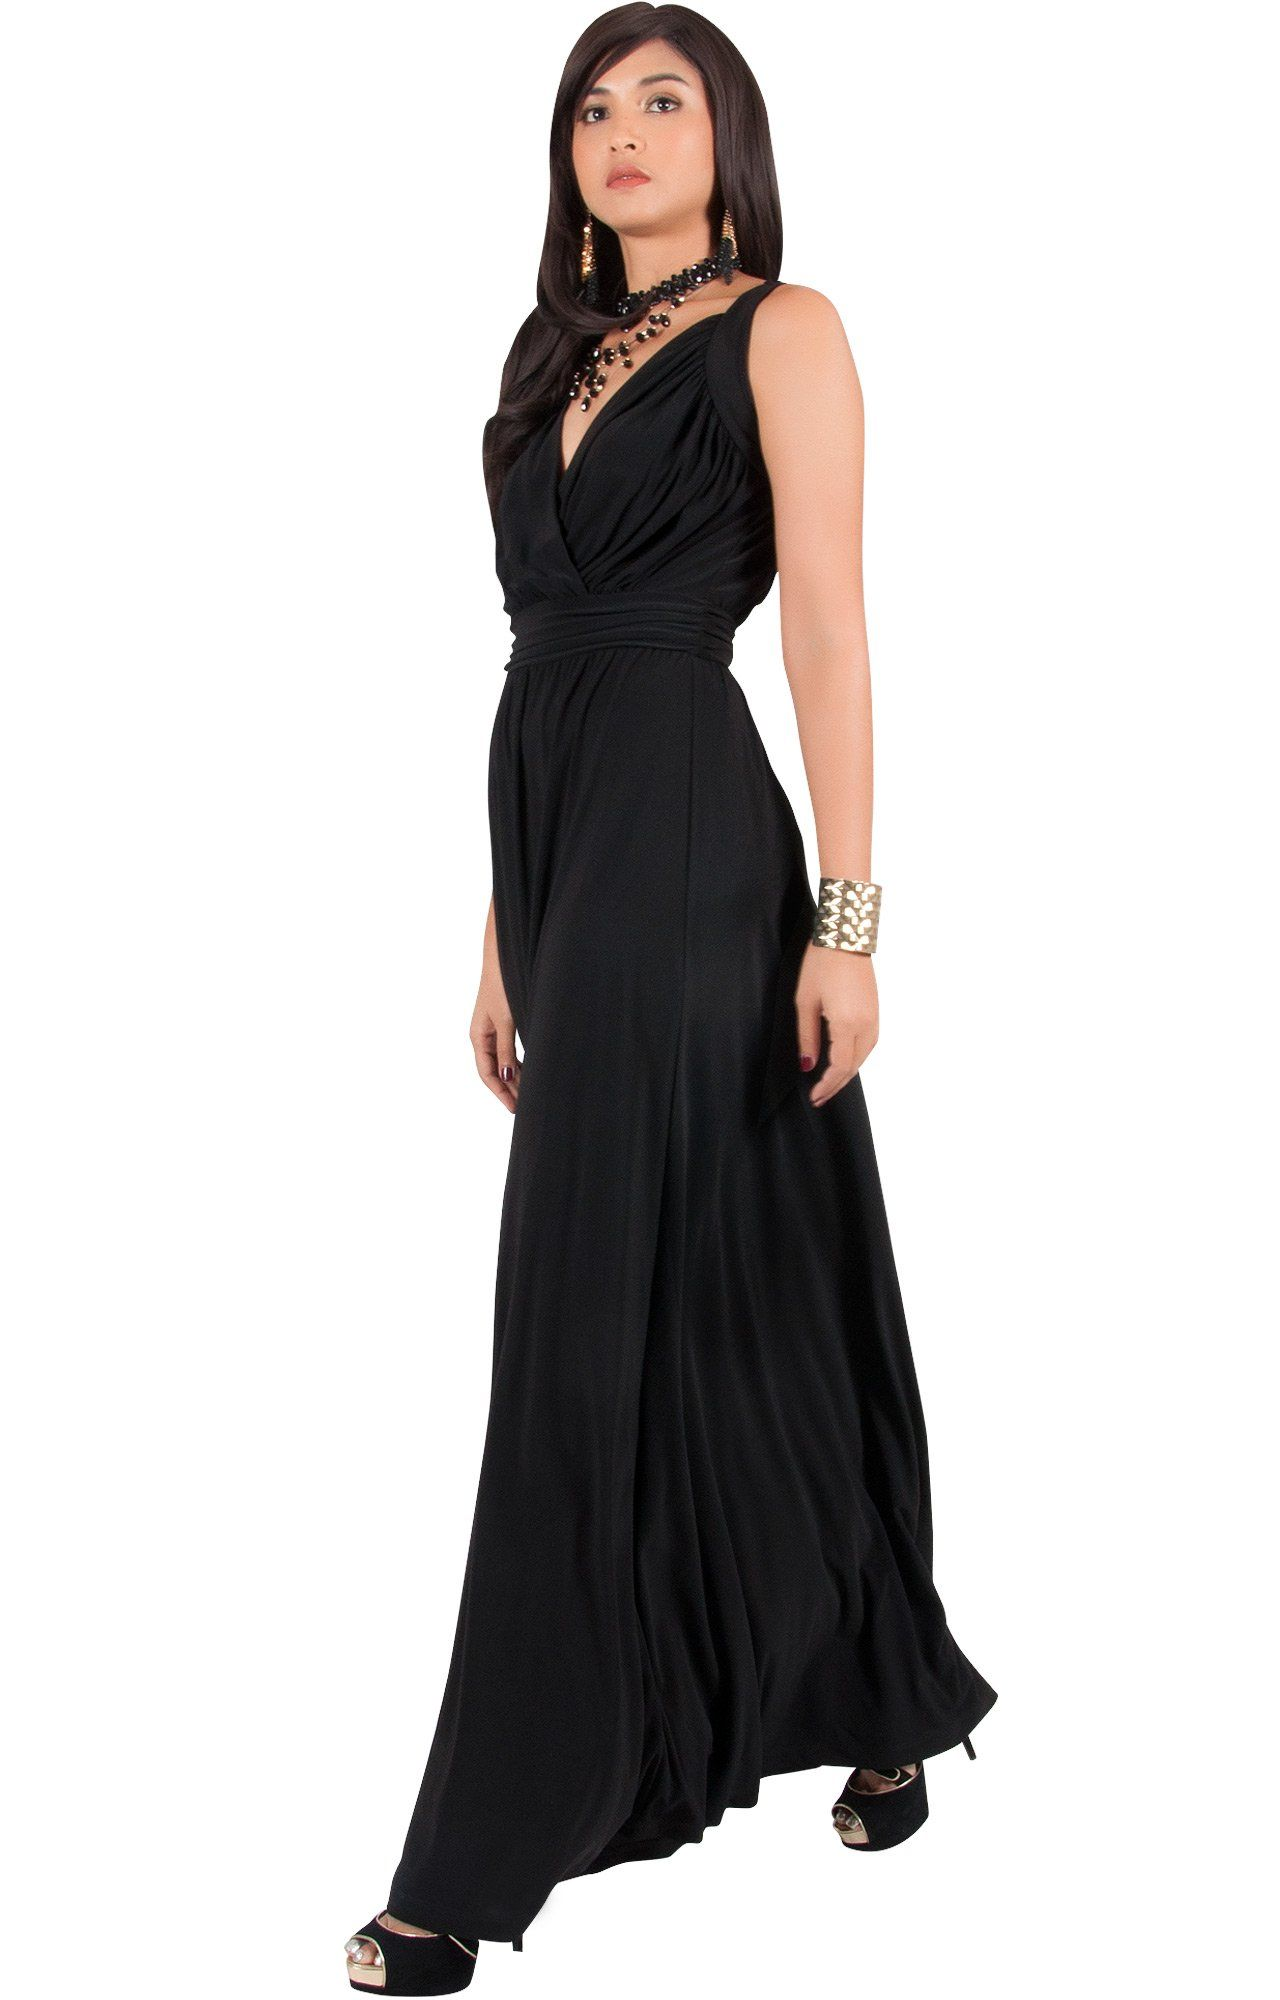 7d9ab6af058 Maternity Dresses - KOH KOH Plus Size Women Long Sleeveless Flowy  Bridesmaids Cocktail Party Evening Formal